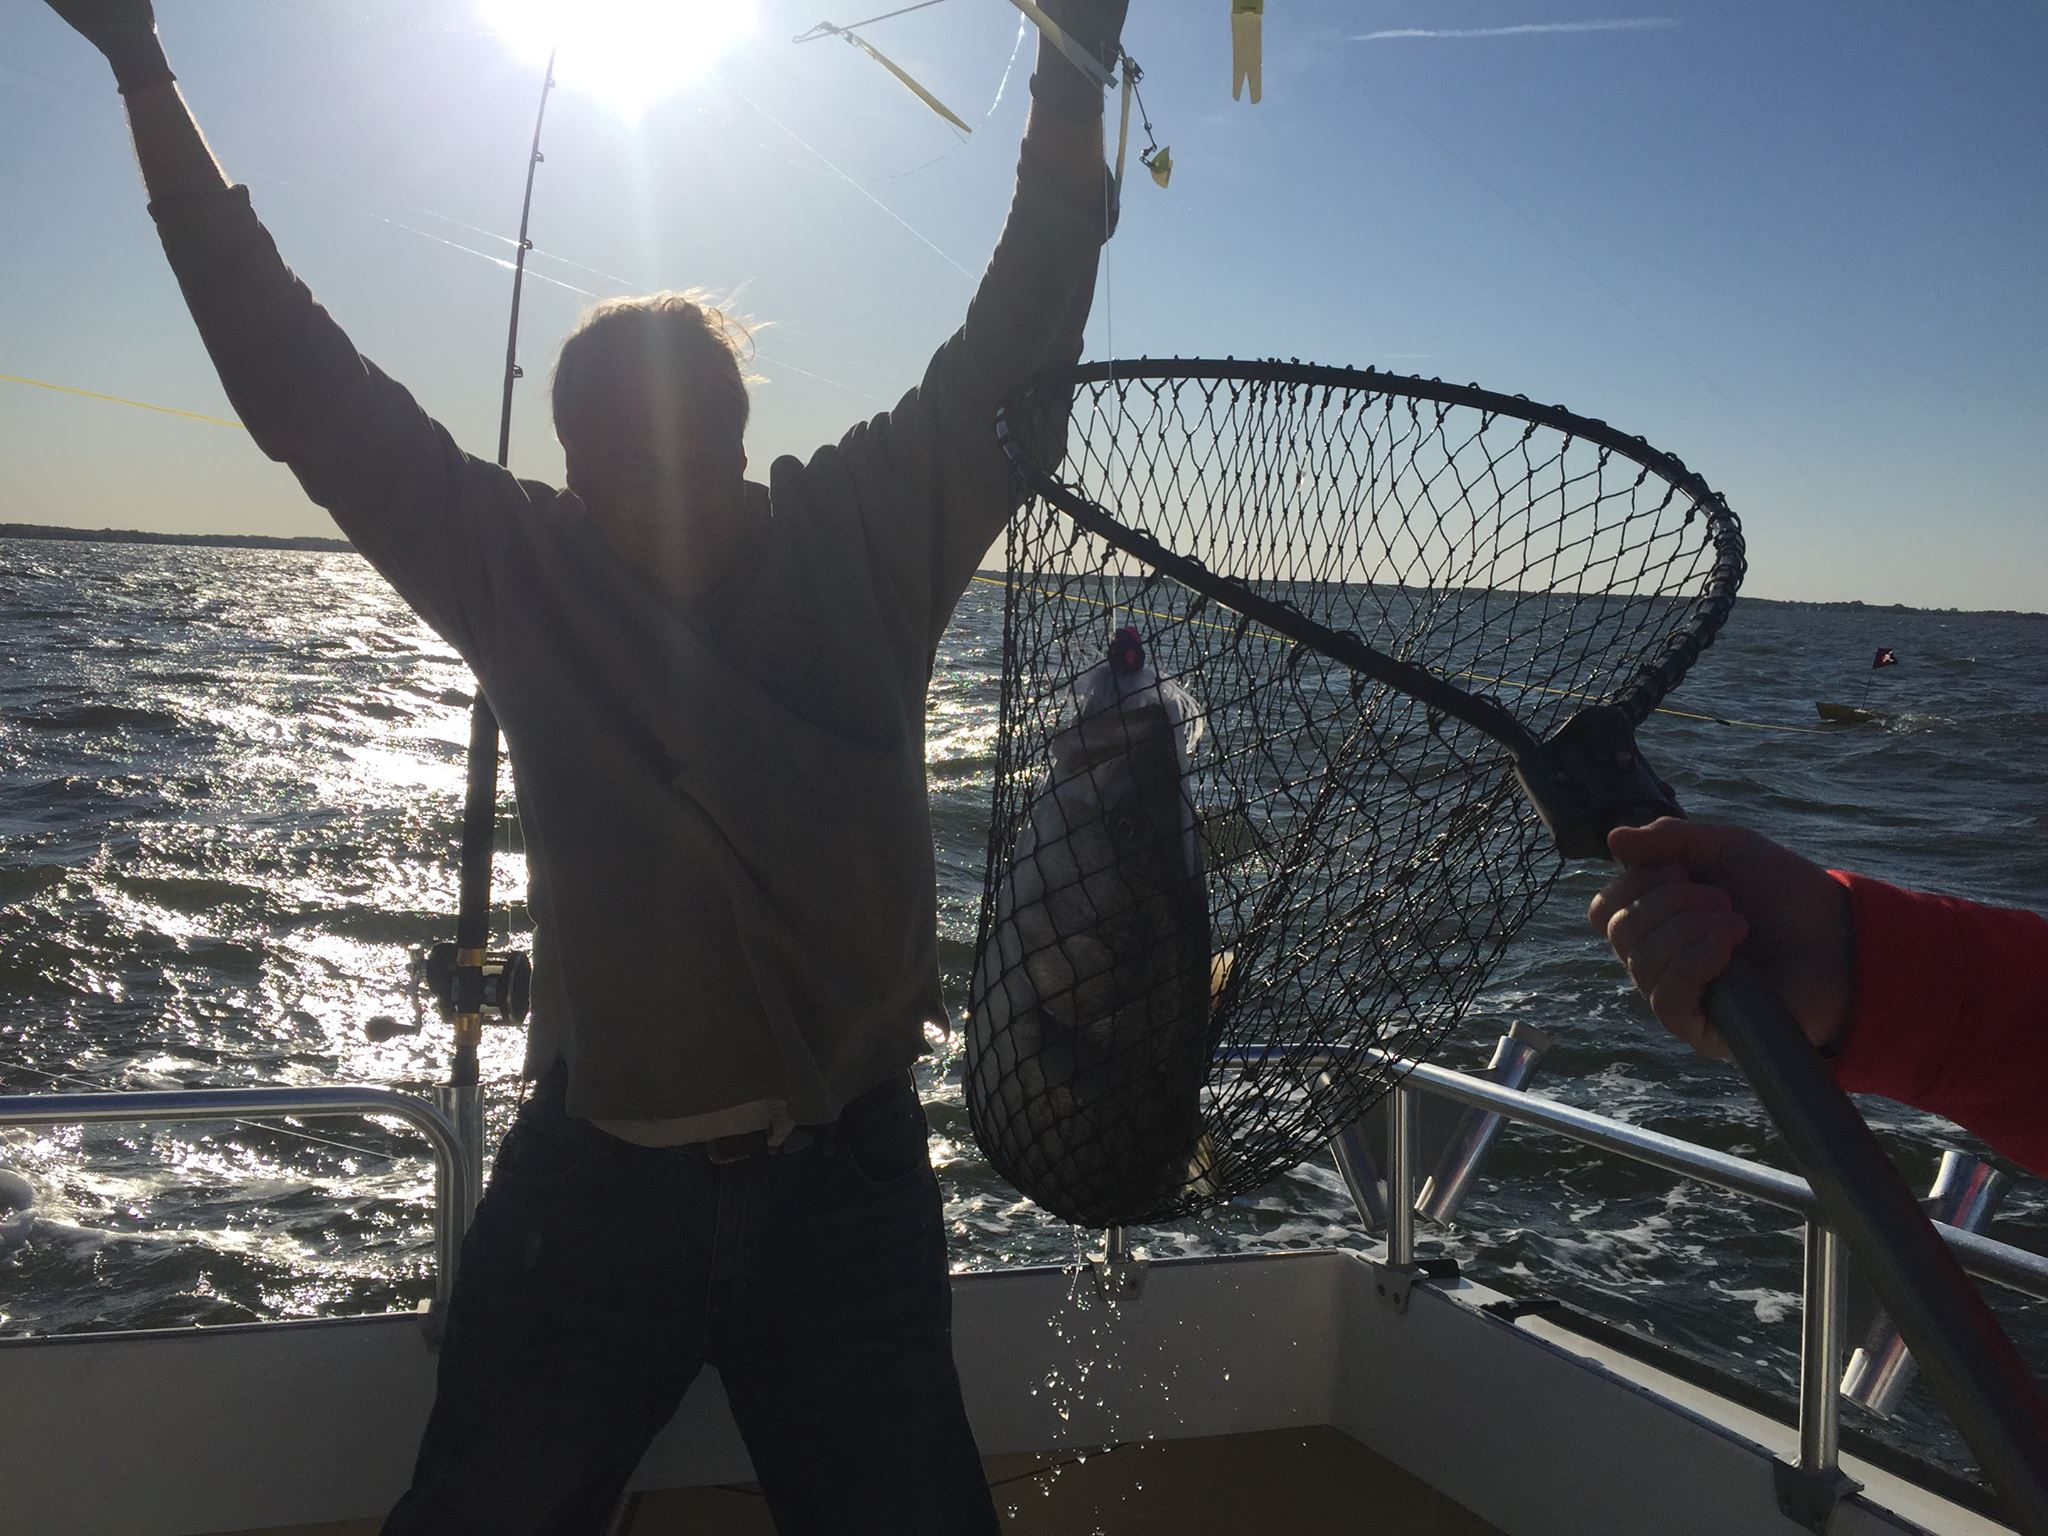 Rockfishing in the Chesapeake Bay